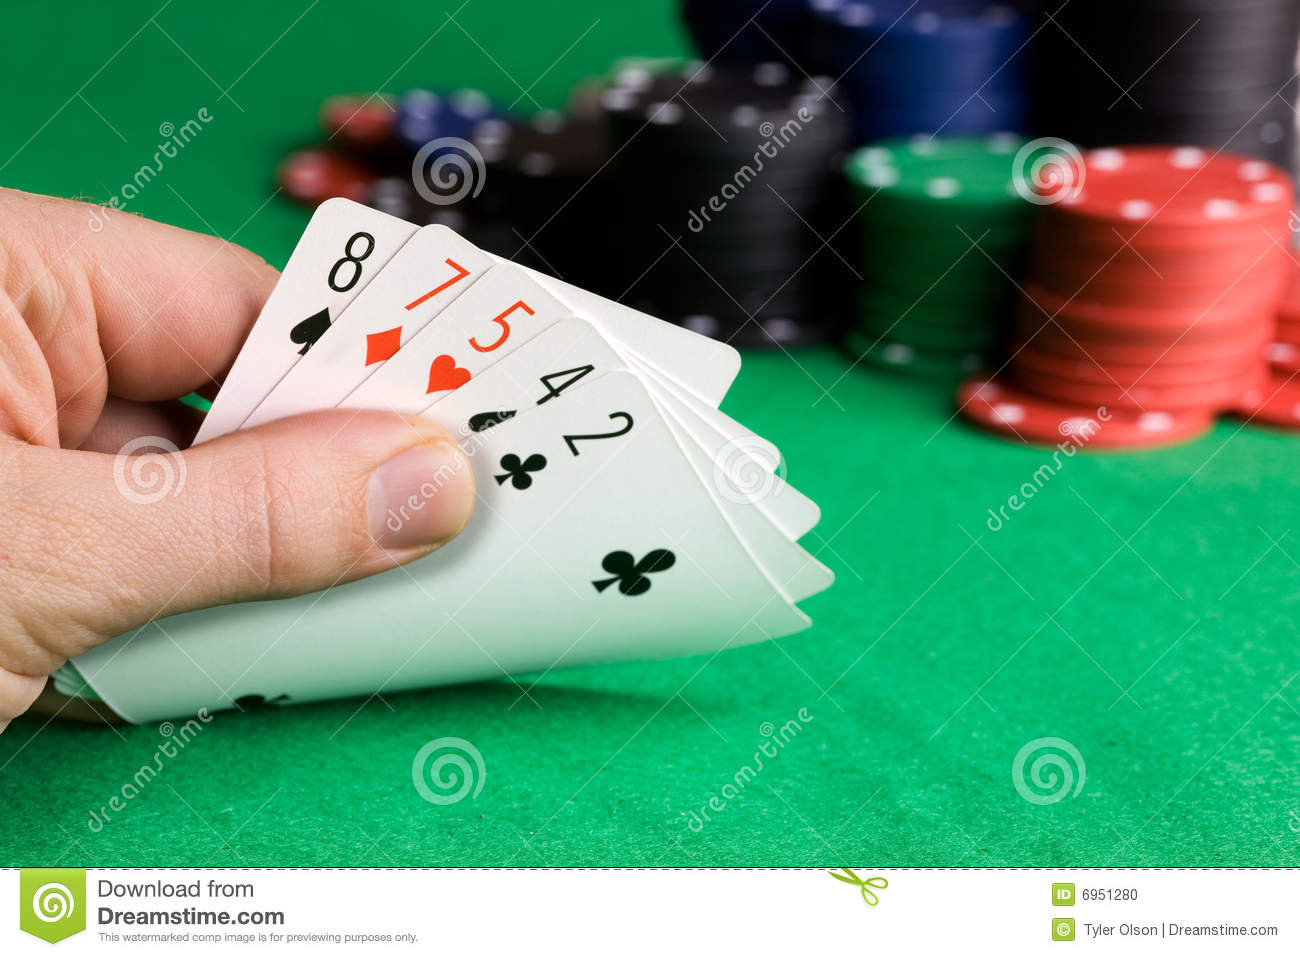 Bluffen Poker